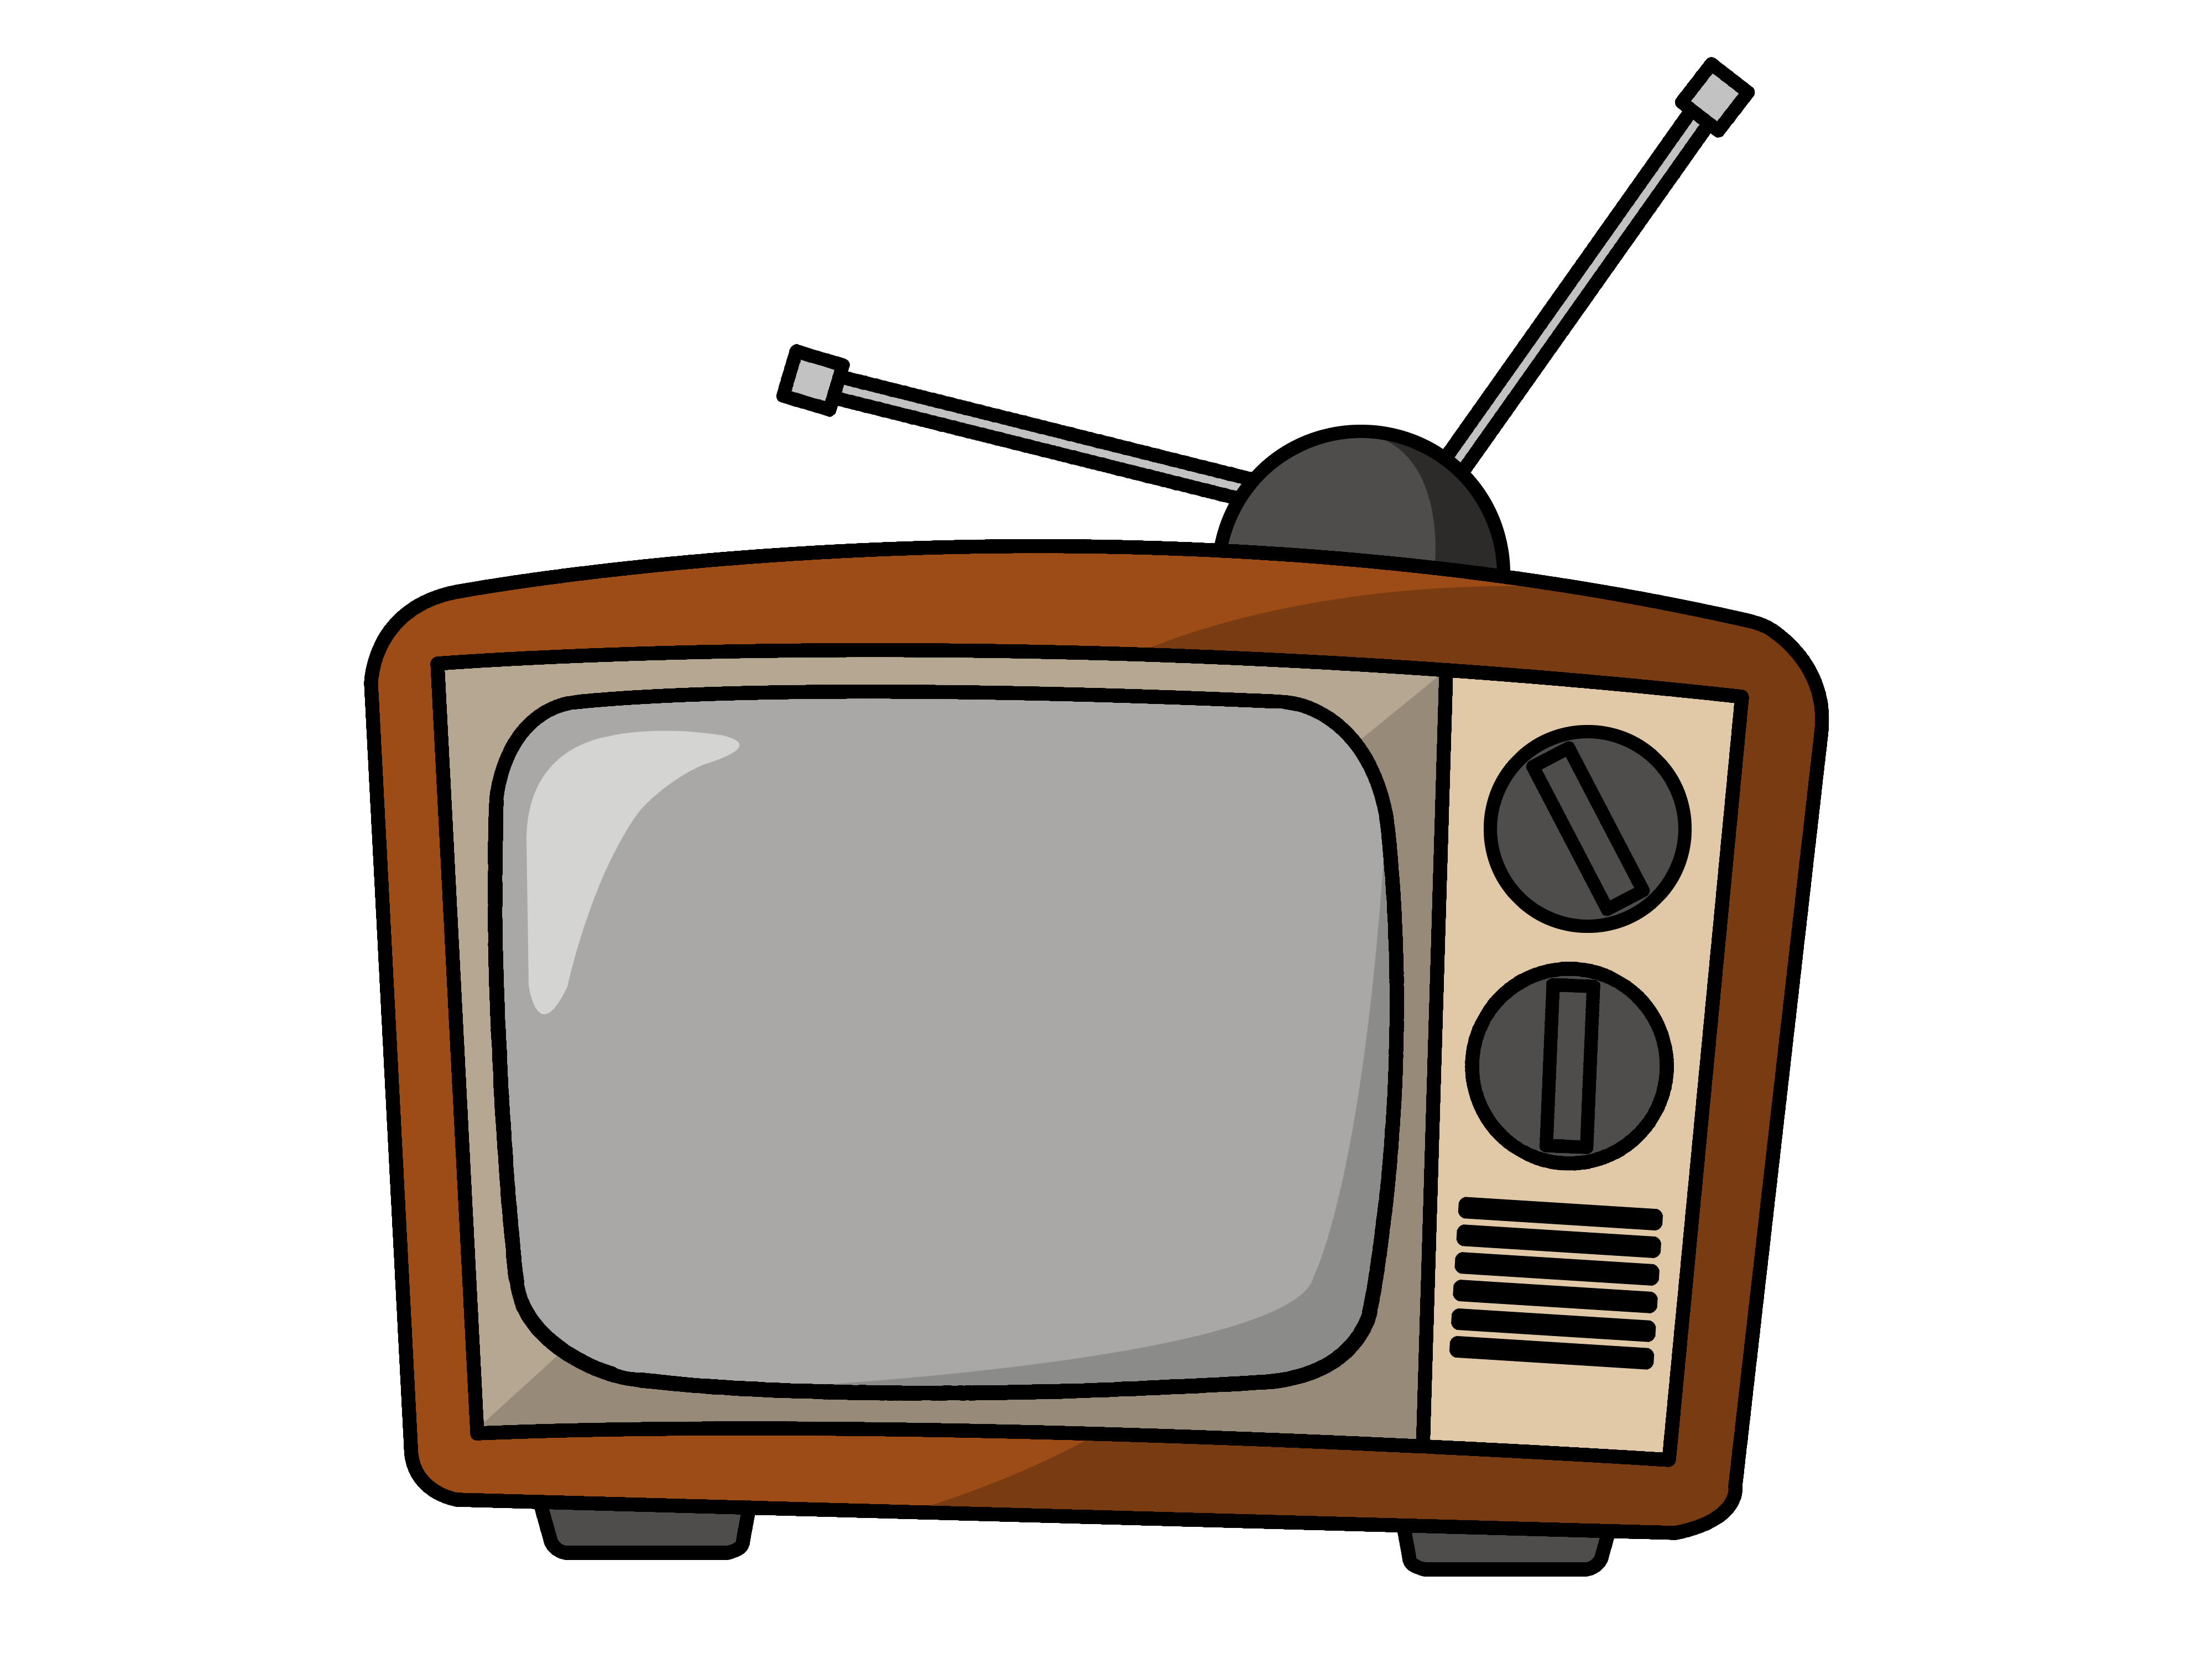 Download Television Tv Free Png Vector image #22257